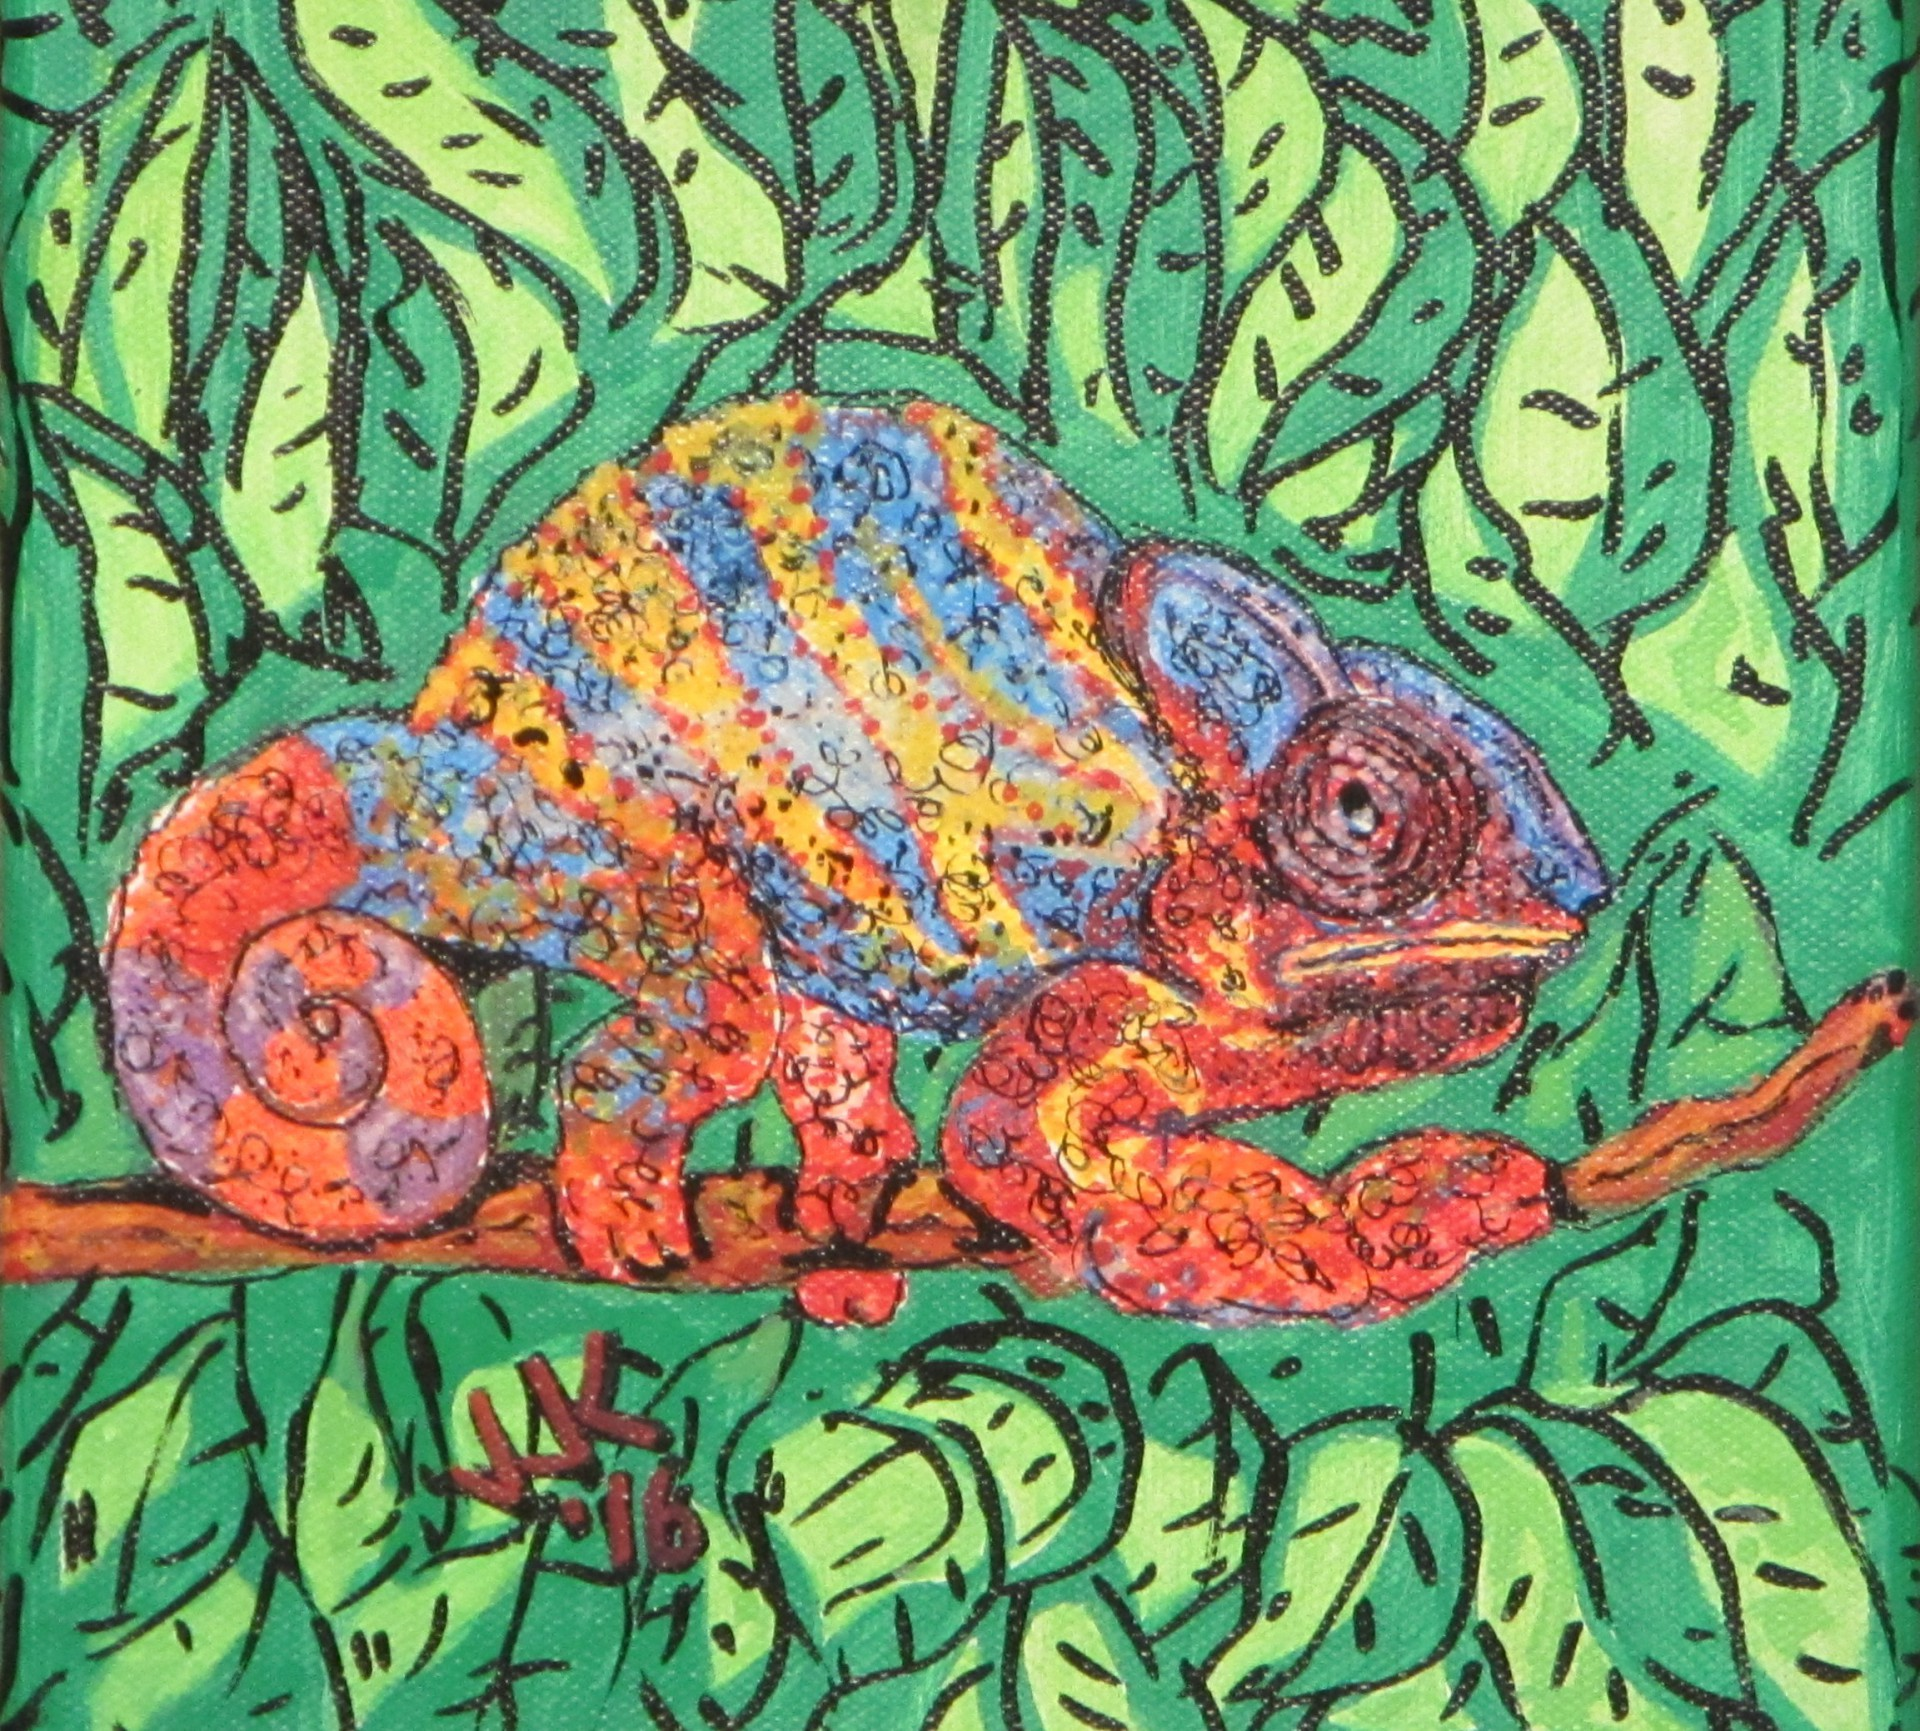 A colorful chameleon.